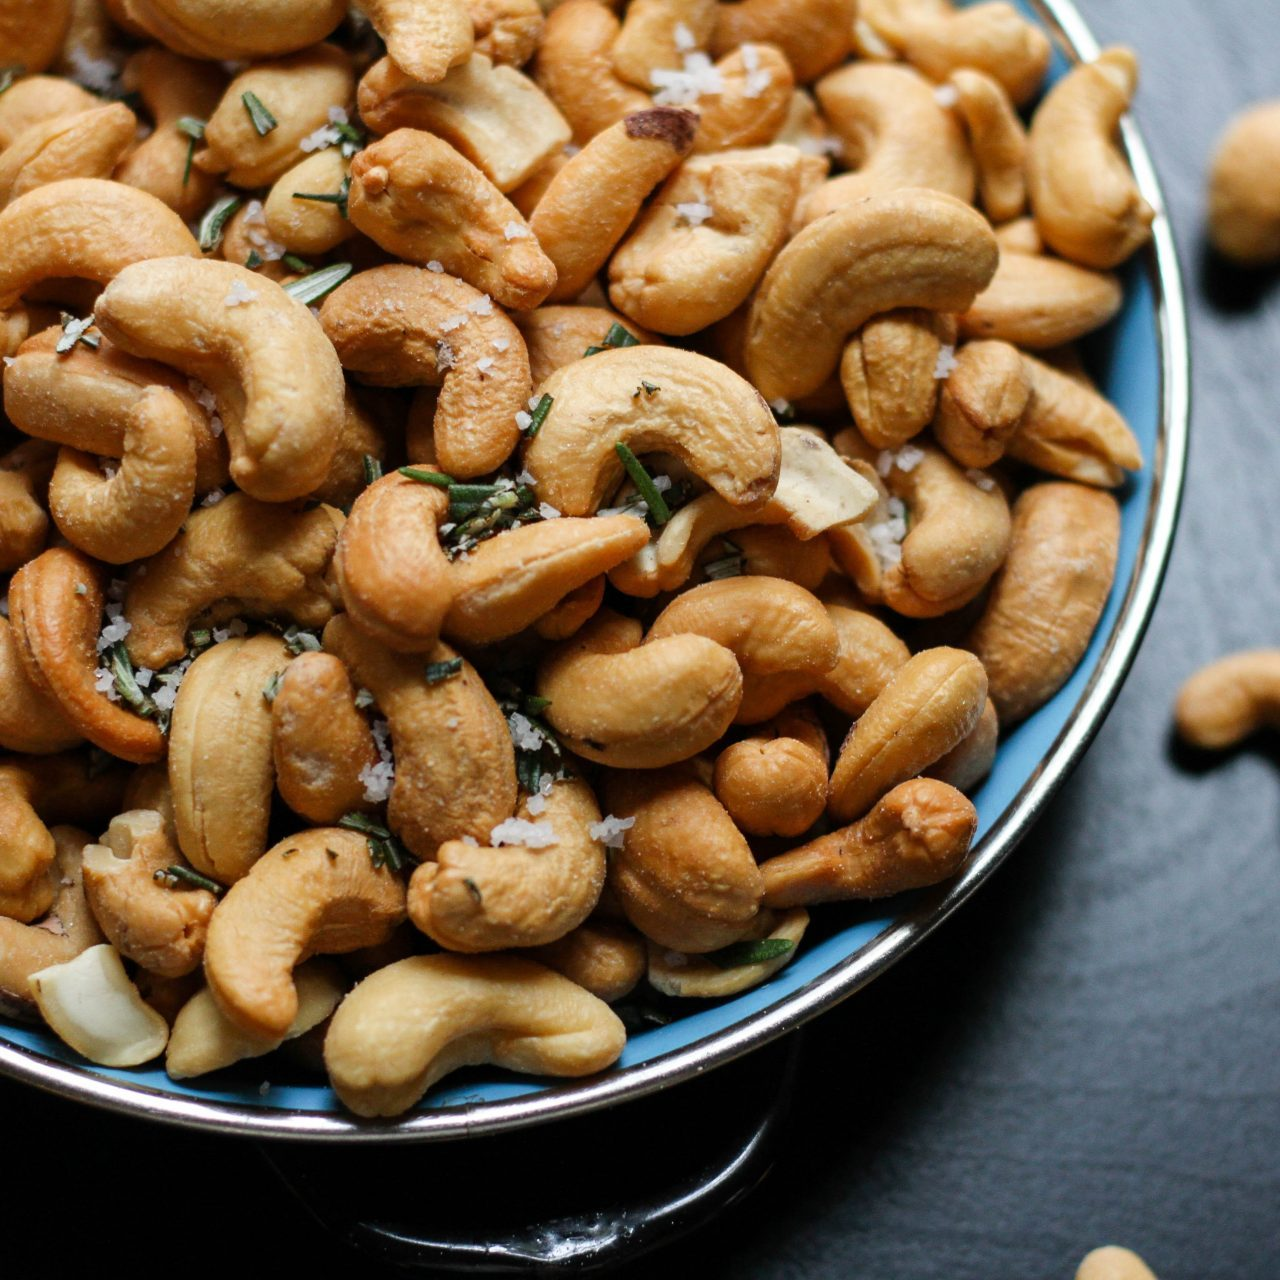 Cashews on a plate on dark background cold snacks